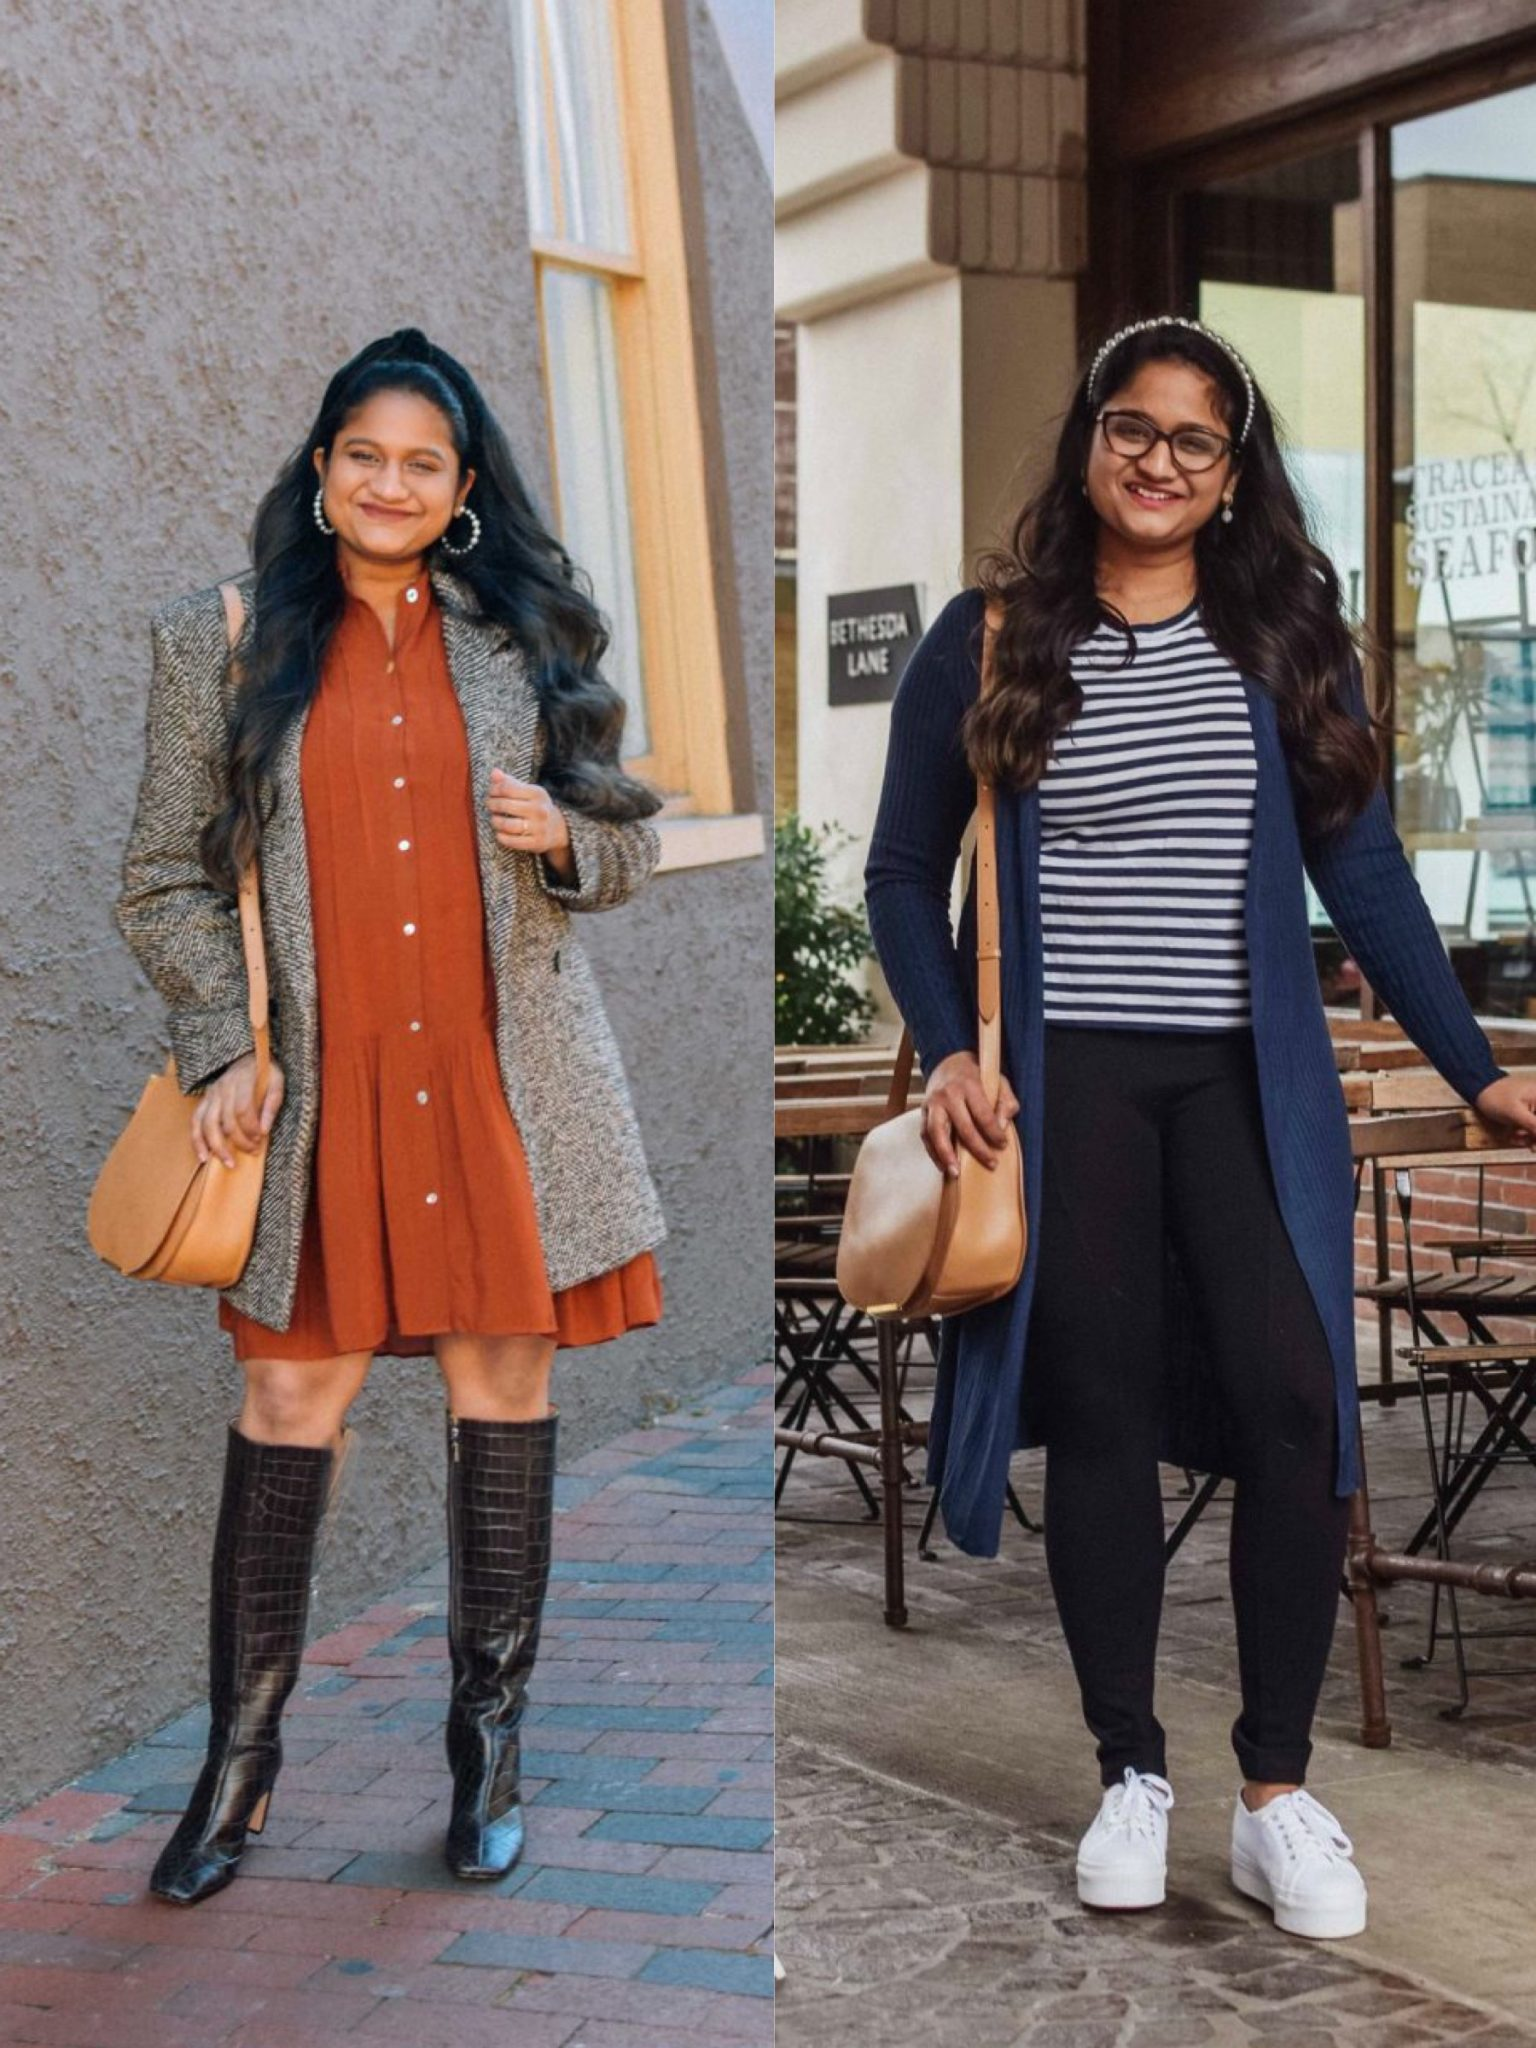 How to wear Cuyana Half Moon Shoulder Bag | Handbags Under $500 by popular Maryland modest fashion blog, Dreaming Loud: collage image of a woman wearing a orange button front dress, back tweed jacket, black knee high boots, blue and white strip skirt, blue cardigan, black stretch pants, white sneaker, and a Cuyanna half moon crossbody bag.